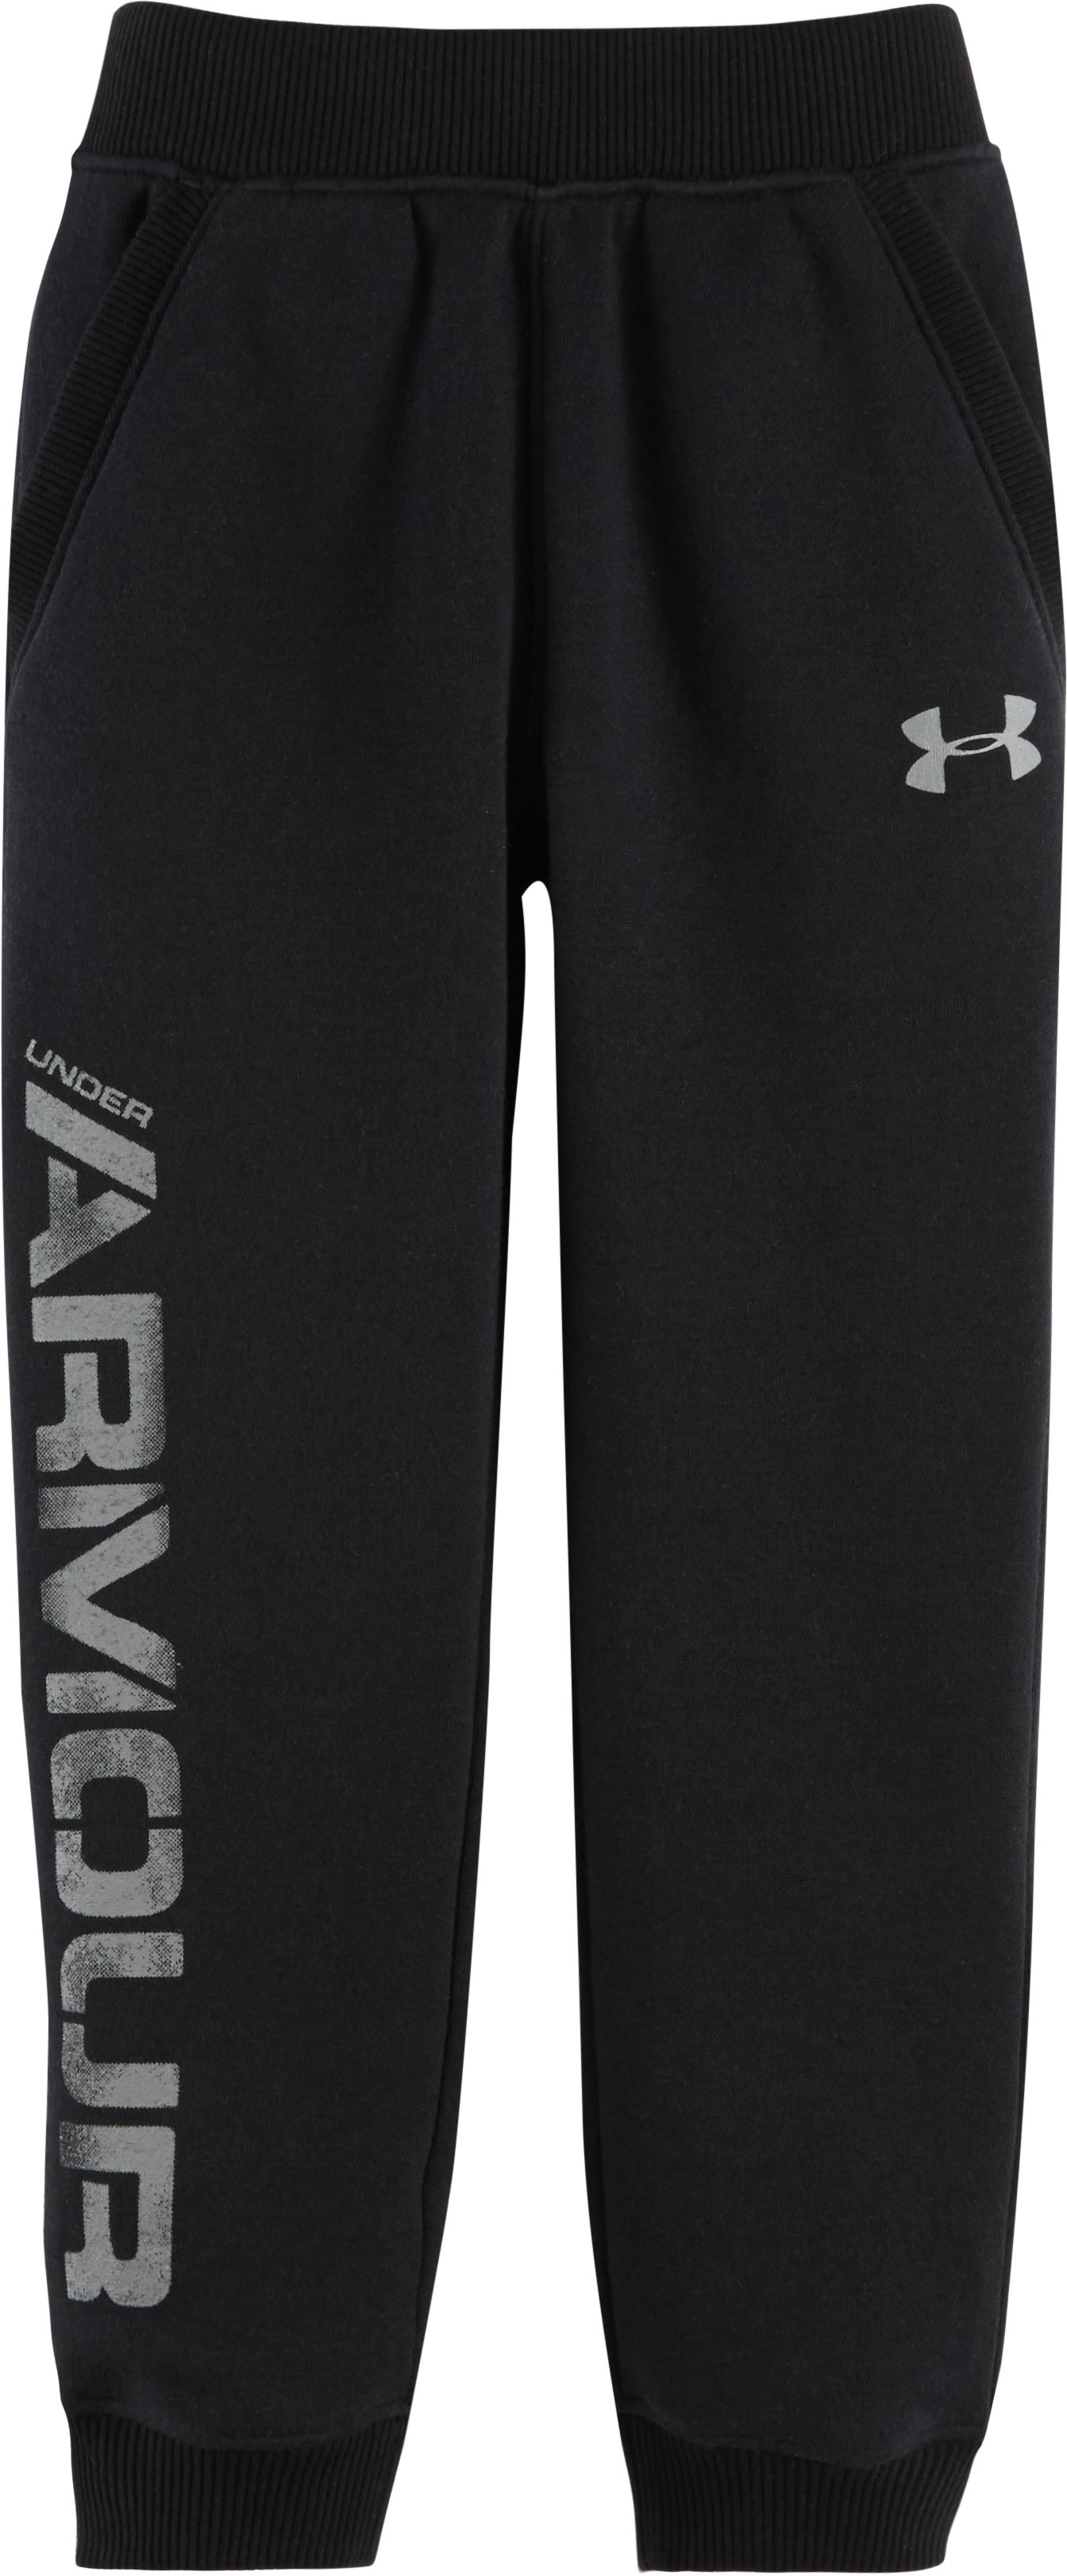 Boys' Pre-School UA Titan Fleece Joggers, Black